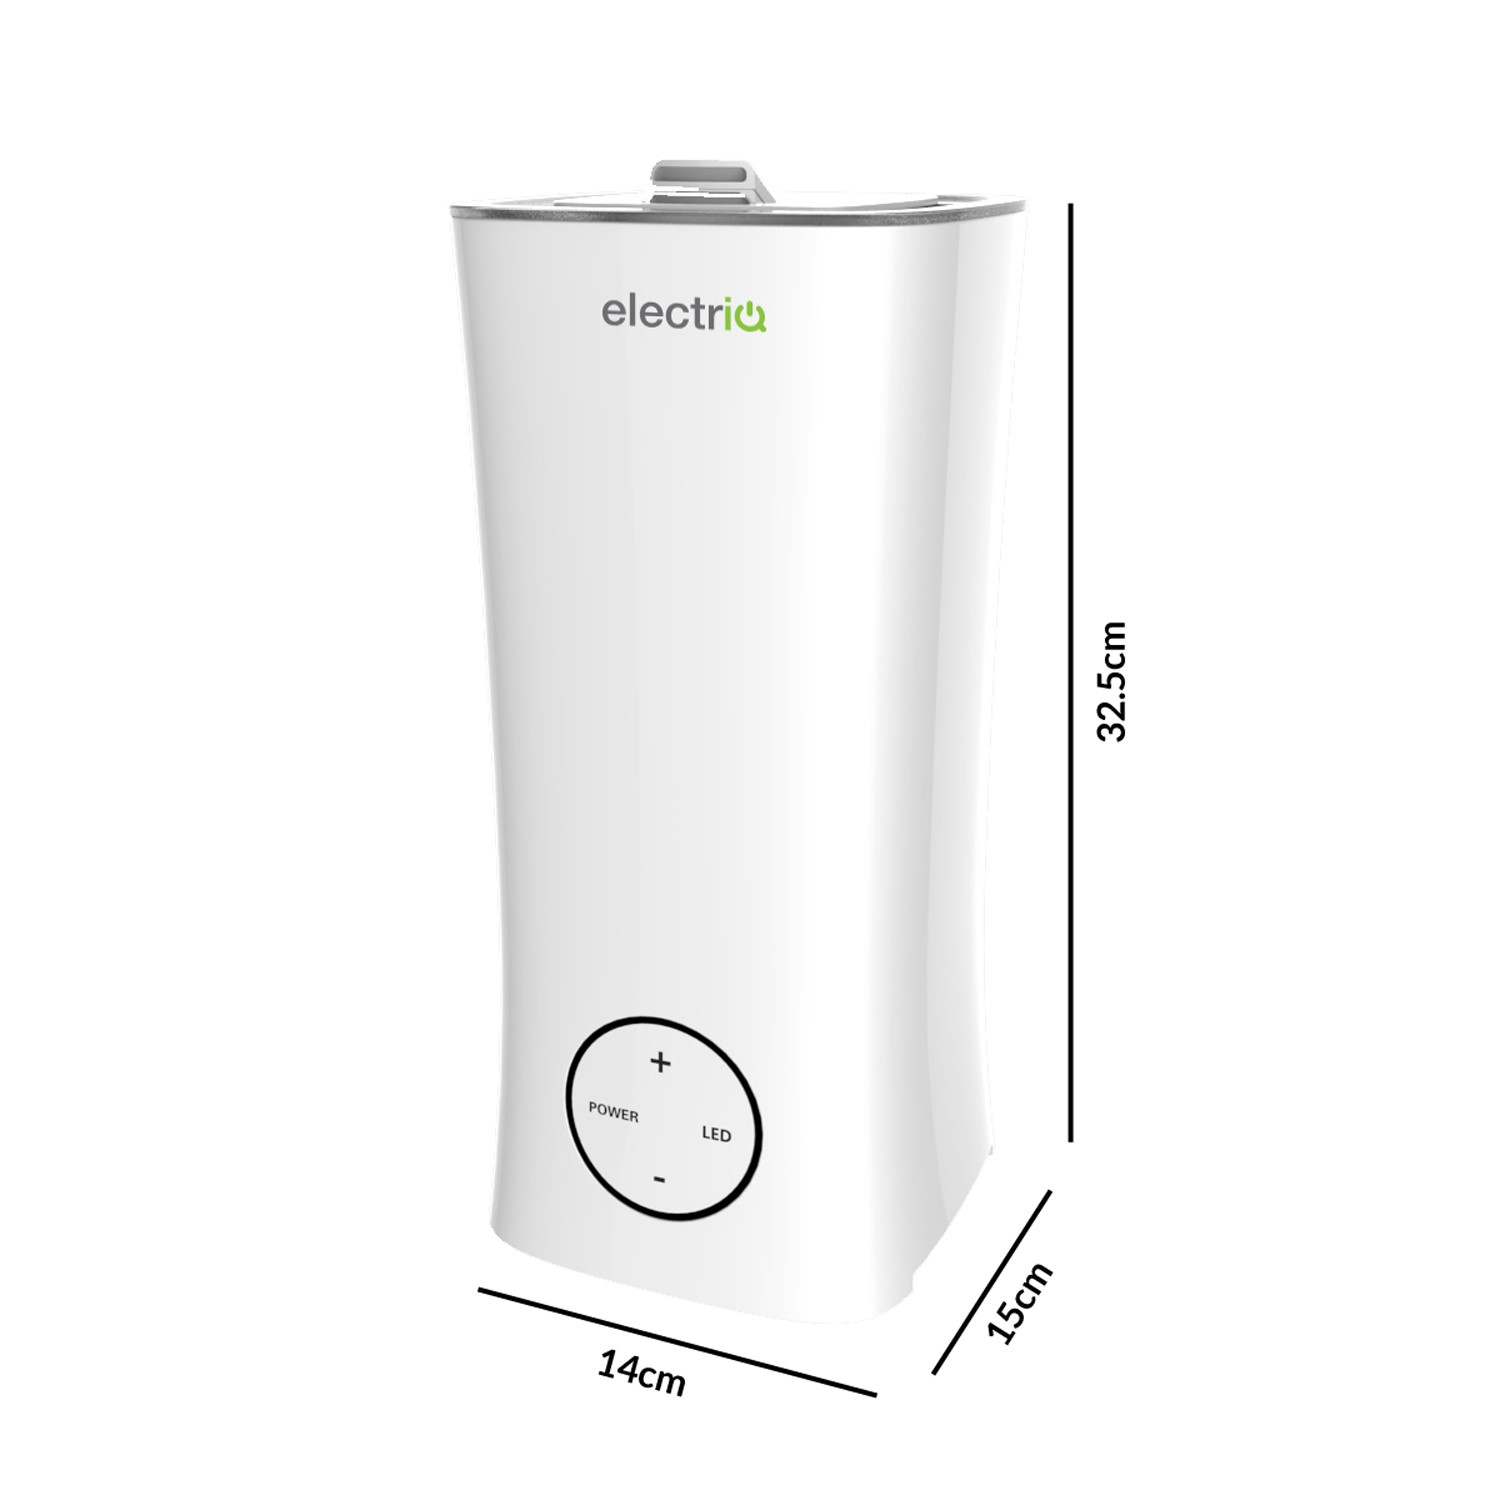 electriQ 2L Cool Mist Humidifier and Aroma Diffuser with Ambient Light and up to 10 hours continuous use